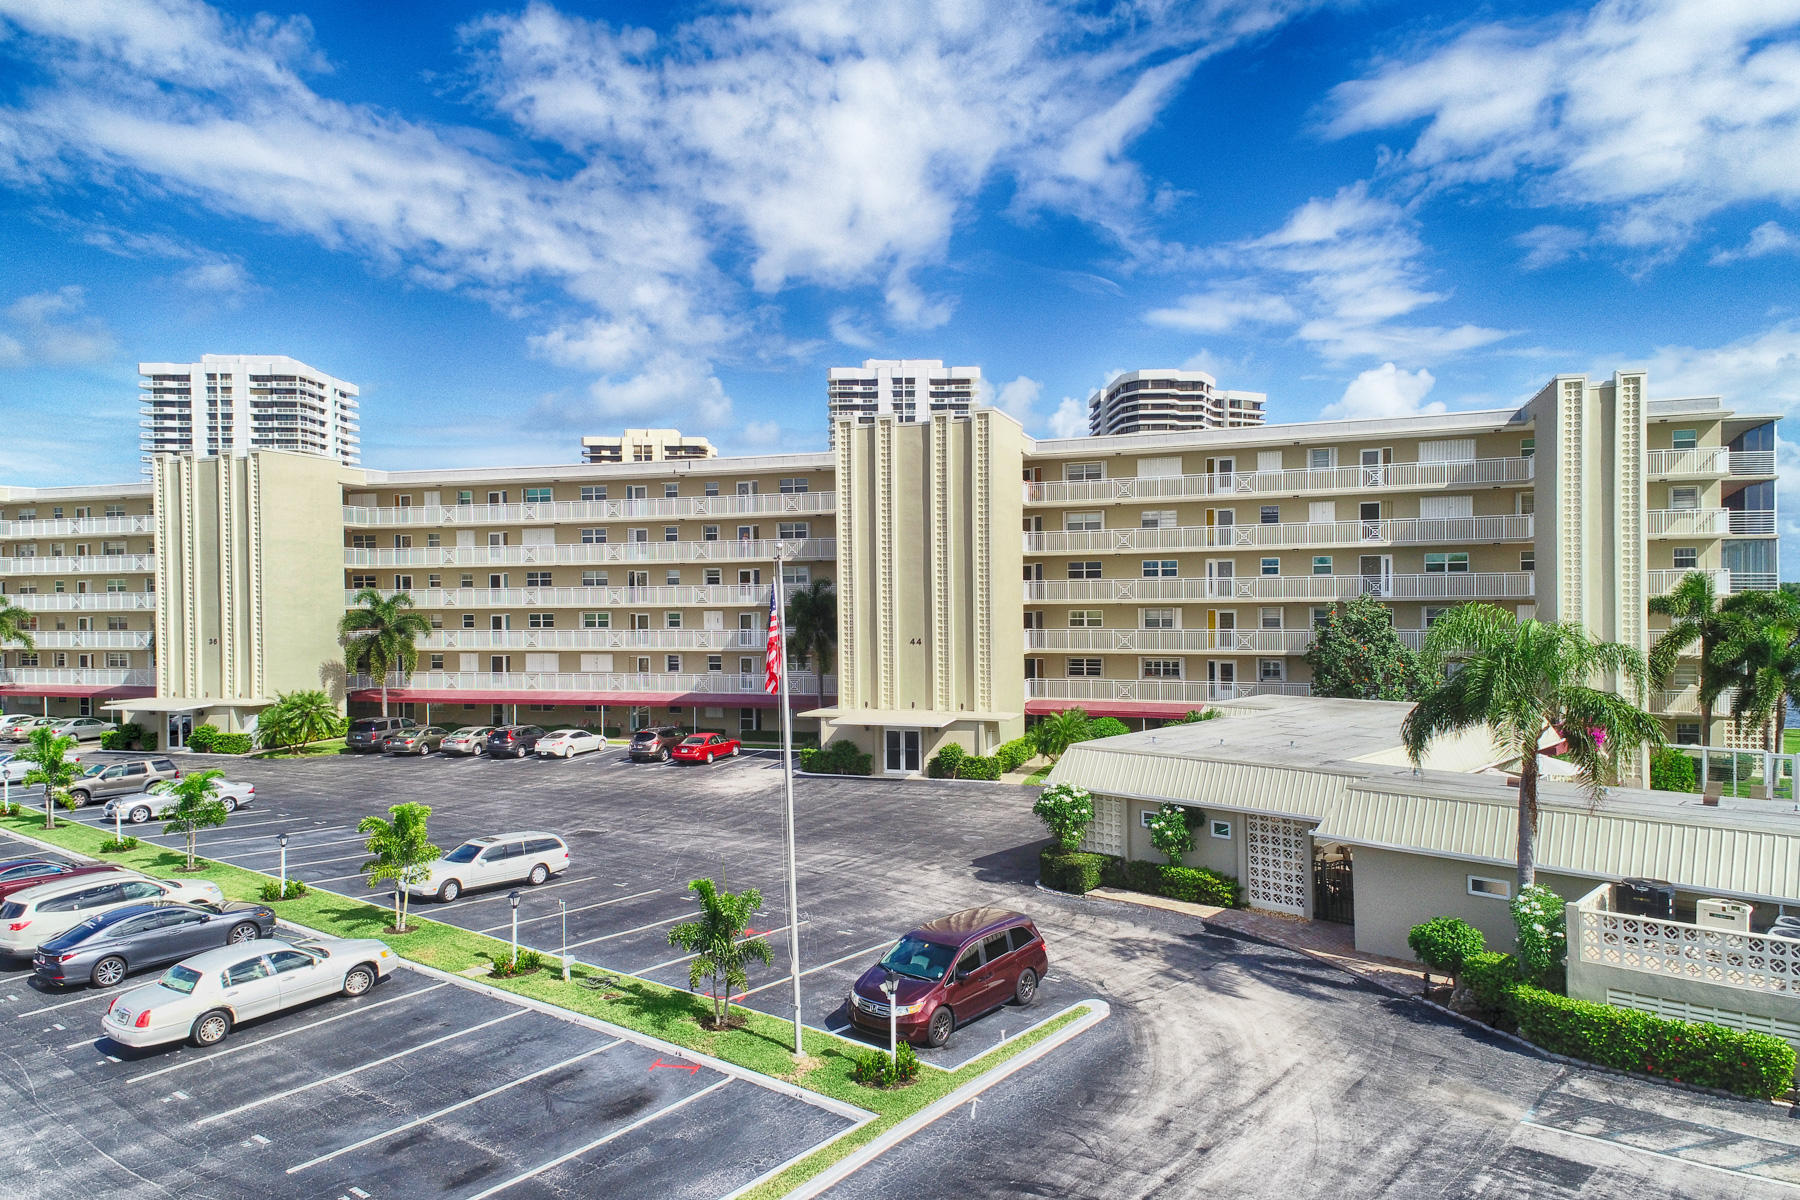 Photo of 44 Yacht Club Drive #409, North Palm Beach, FL 33408